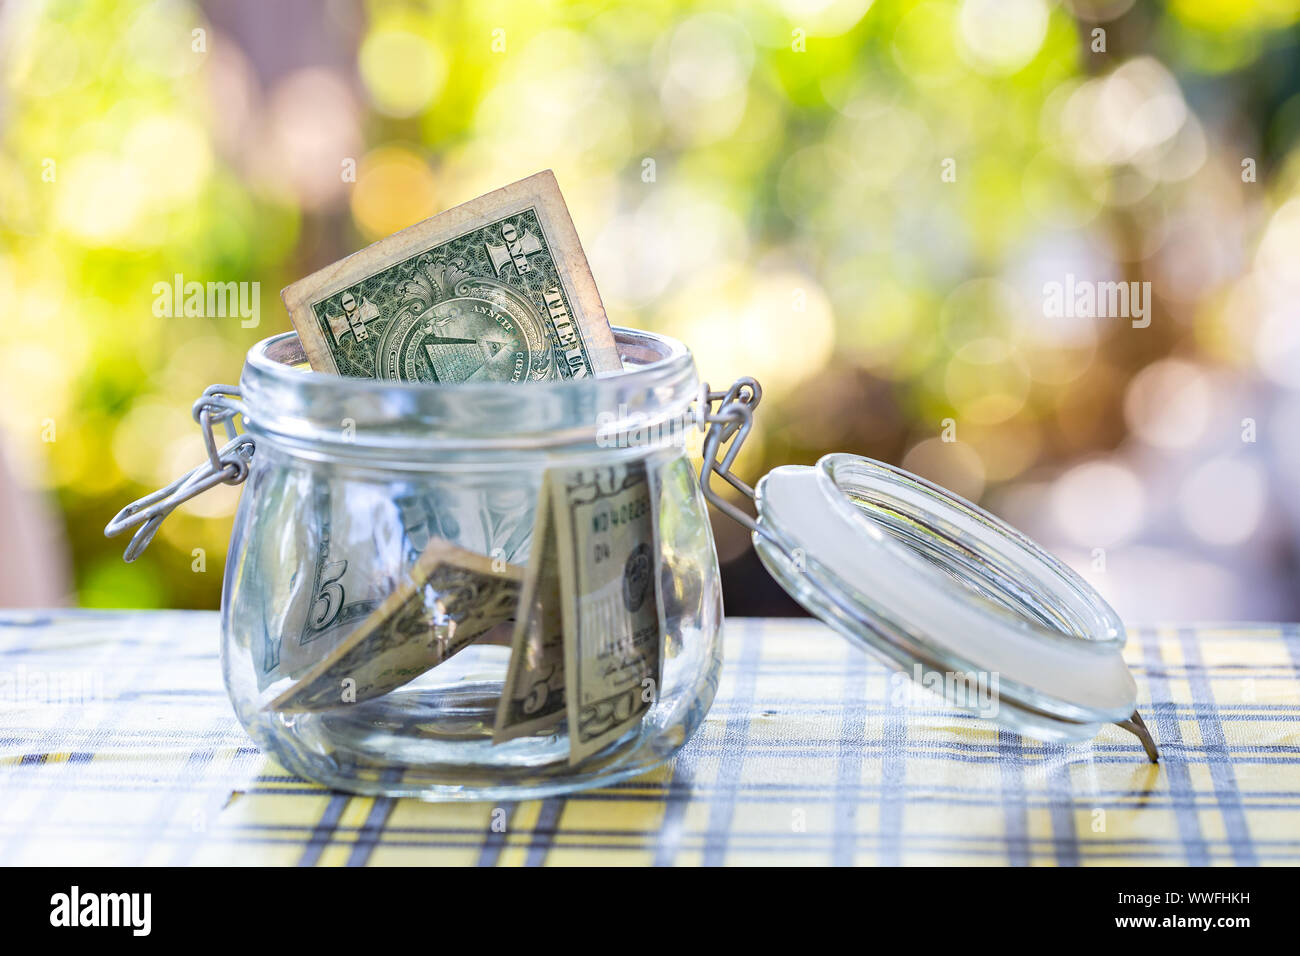 American banknote in glass jar. Stock Photo